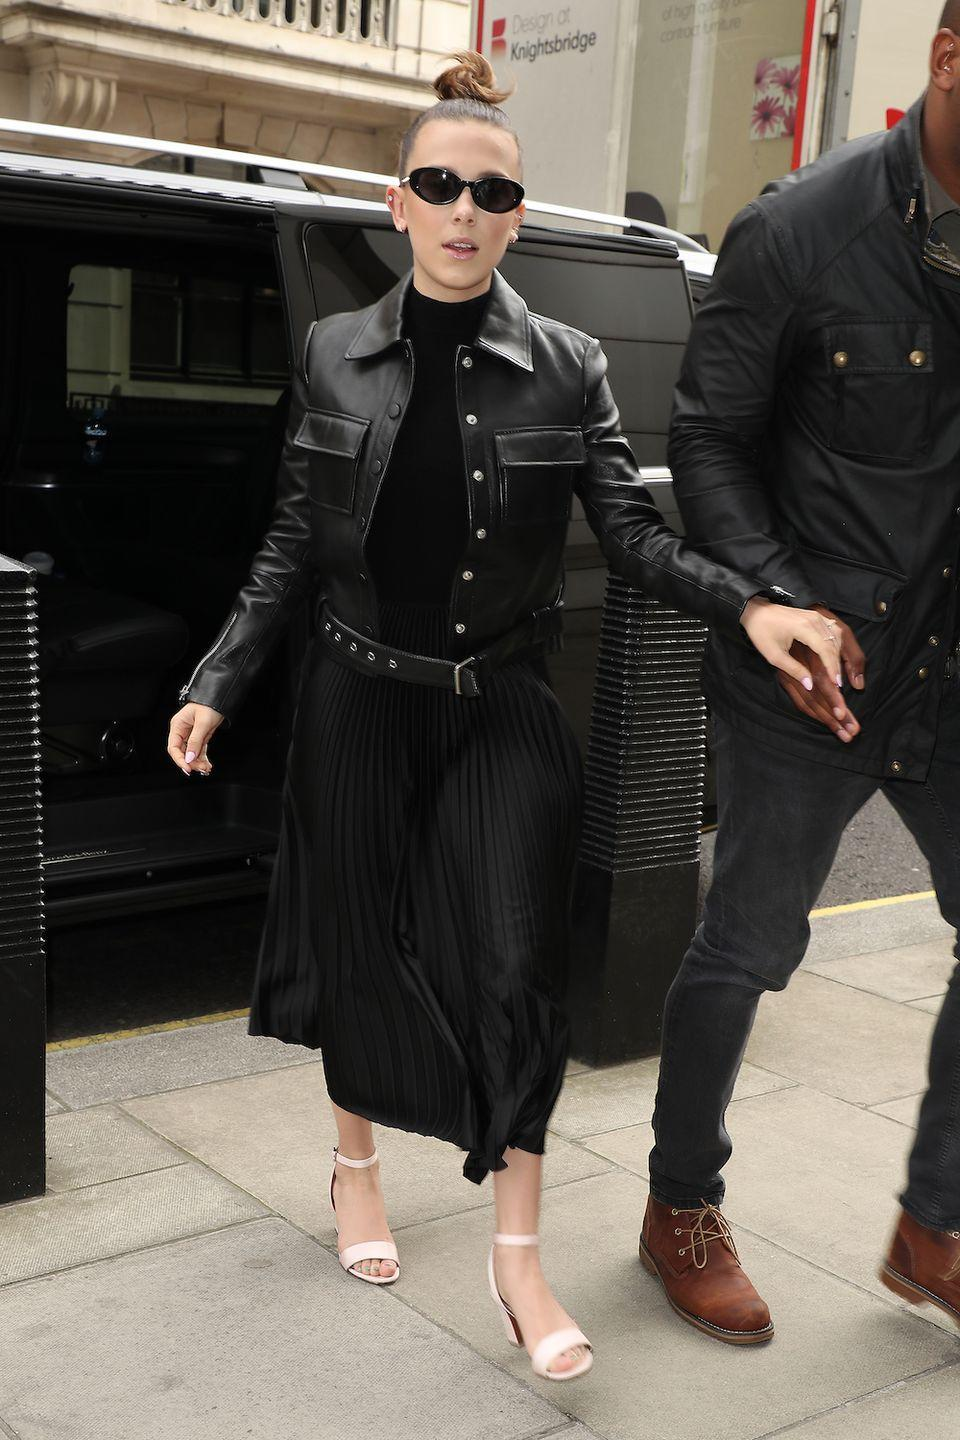 <p>Classic Millie! She injected a little retro glamour to edgy staples (the leather jacket, the inky sweater) with vintage-y cat eye sunglasses and powder pink heels.</p>